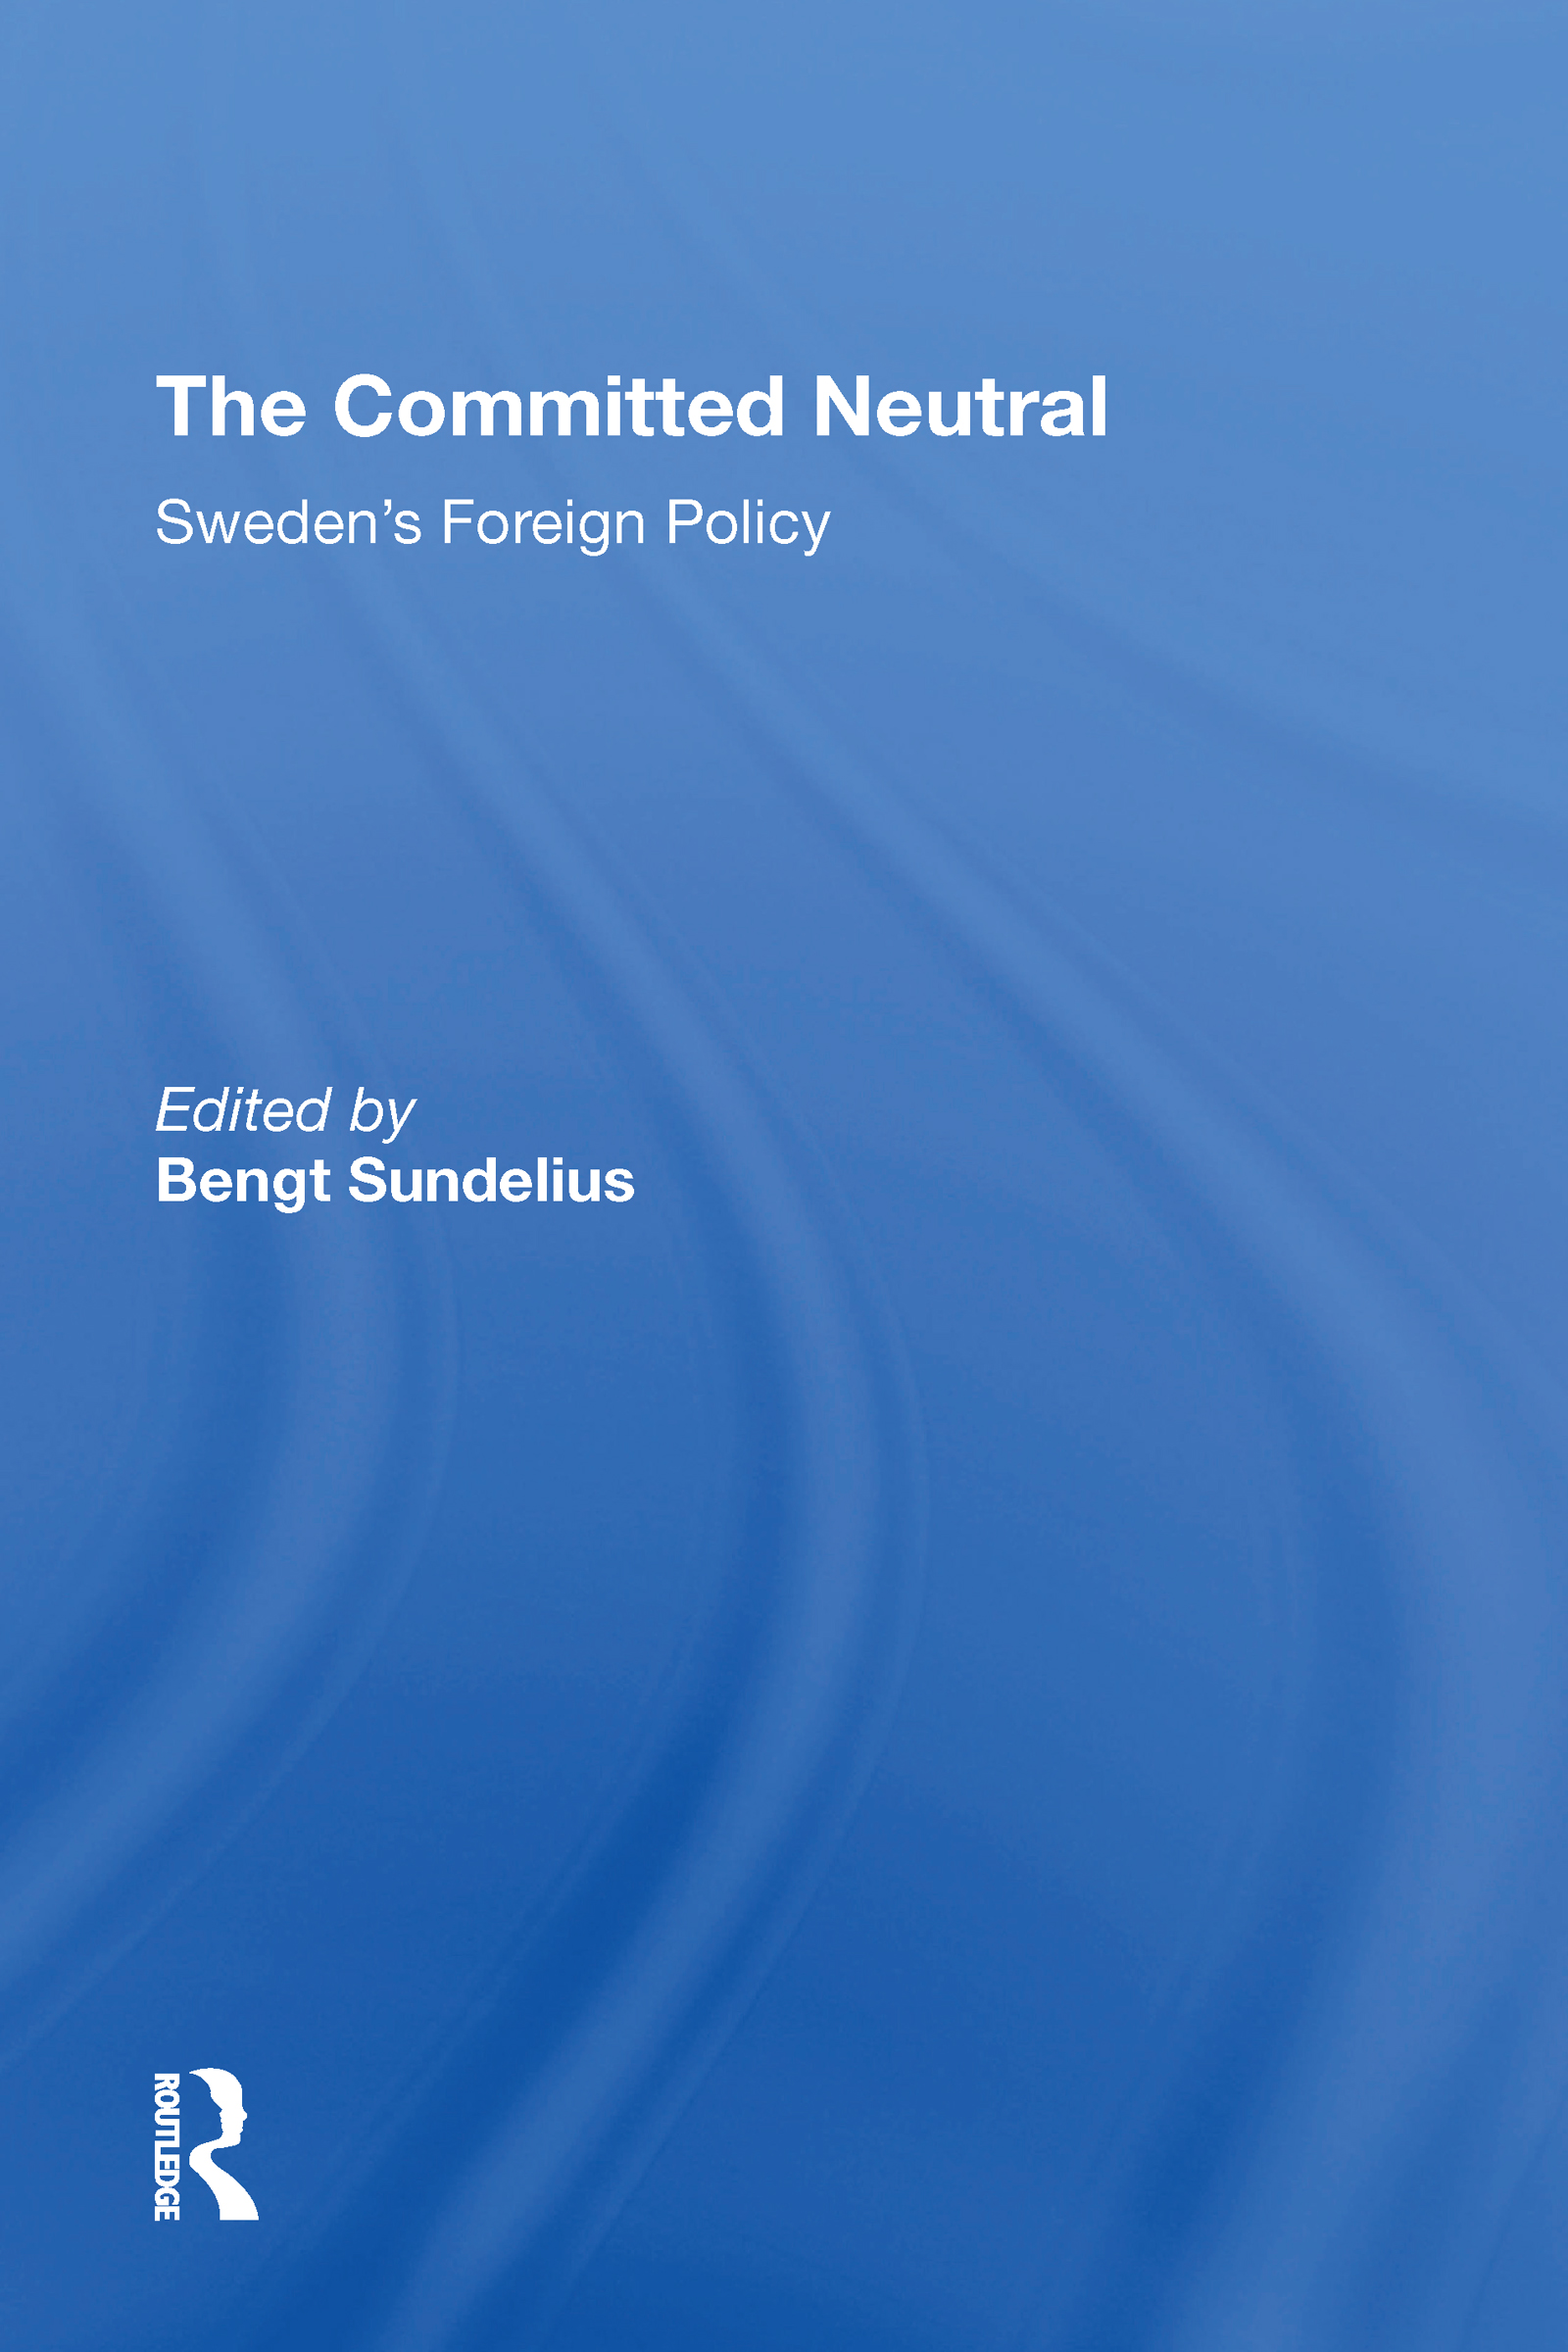 The Committed Neutral